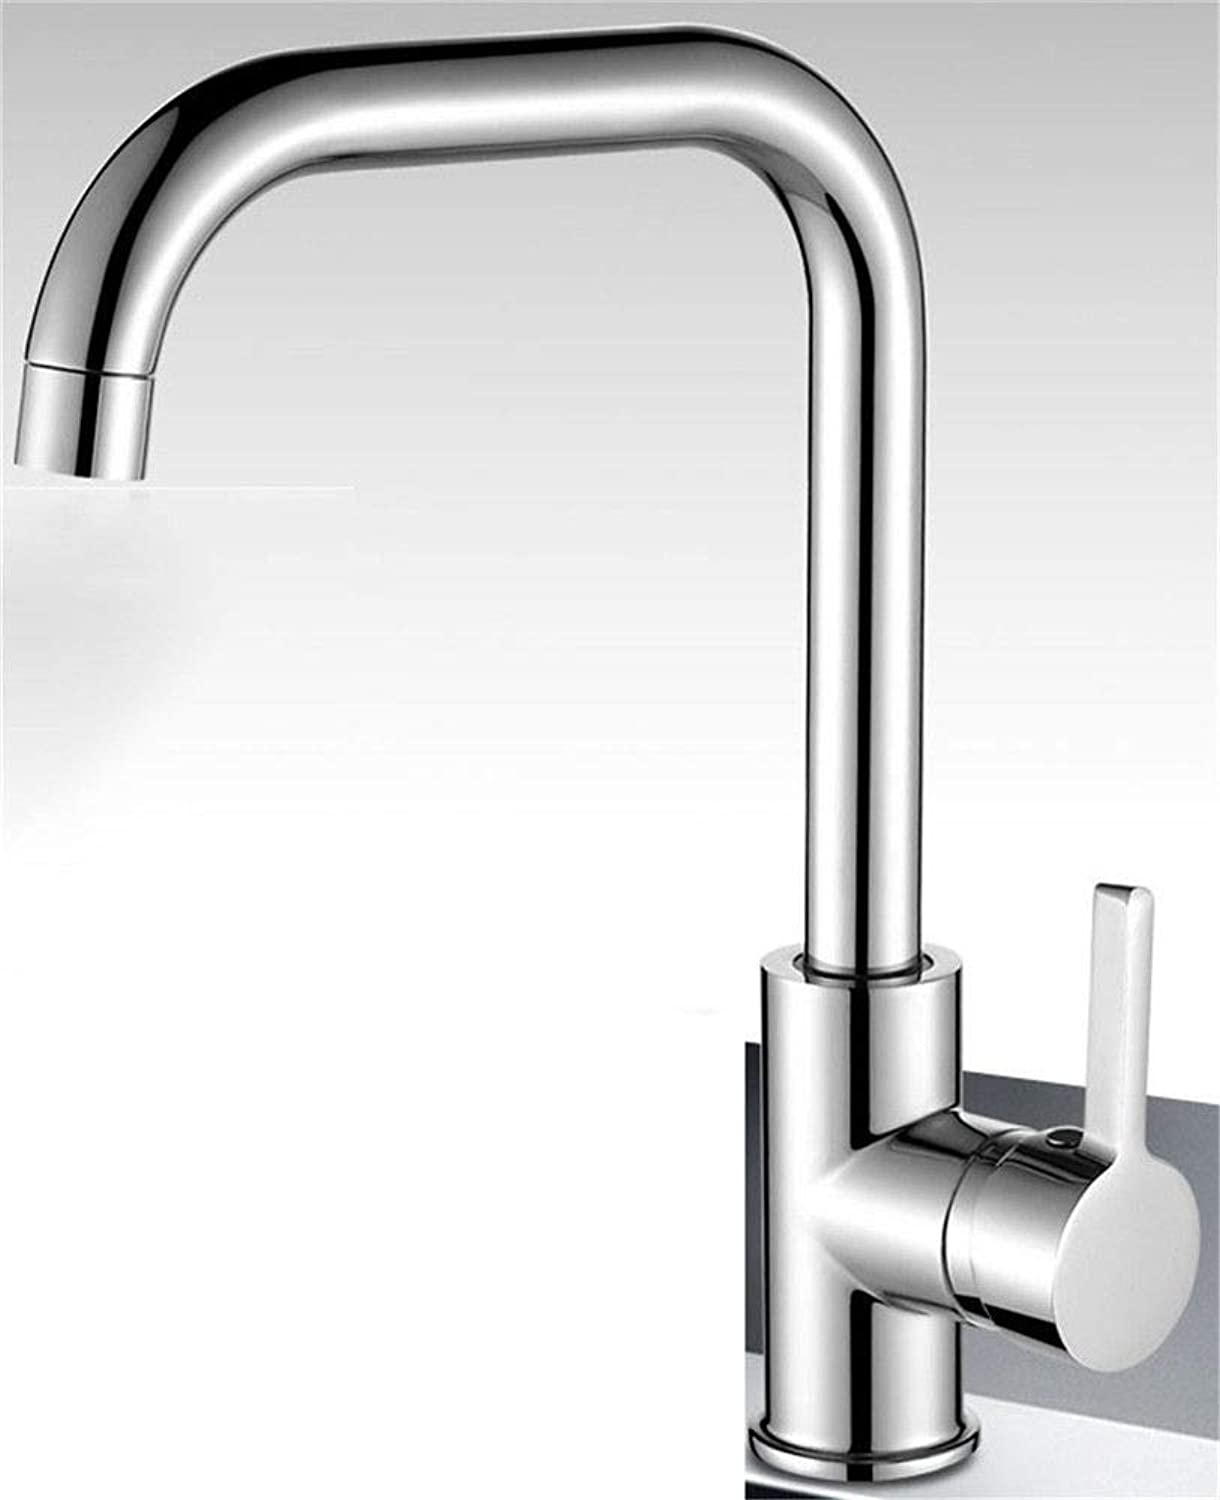 Lpophy Bathroom Sink Mixer Taps Faucet Bath Waterfall Cold and Hot Water Tap for Washroom Bathroom and Kitchen Stainless Steel redating Right Angle Double Hole?A